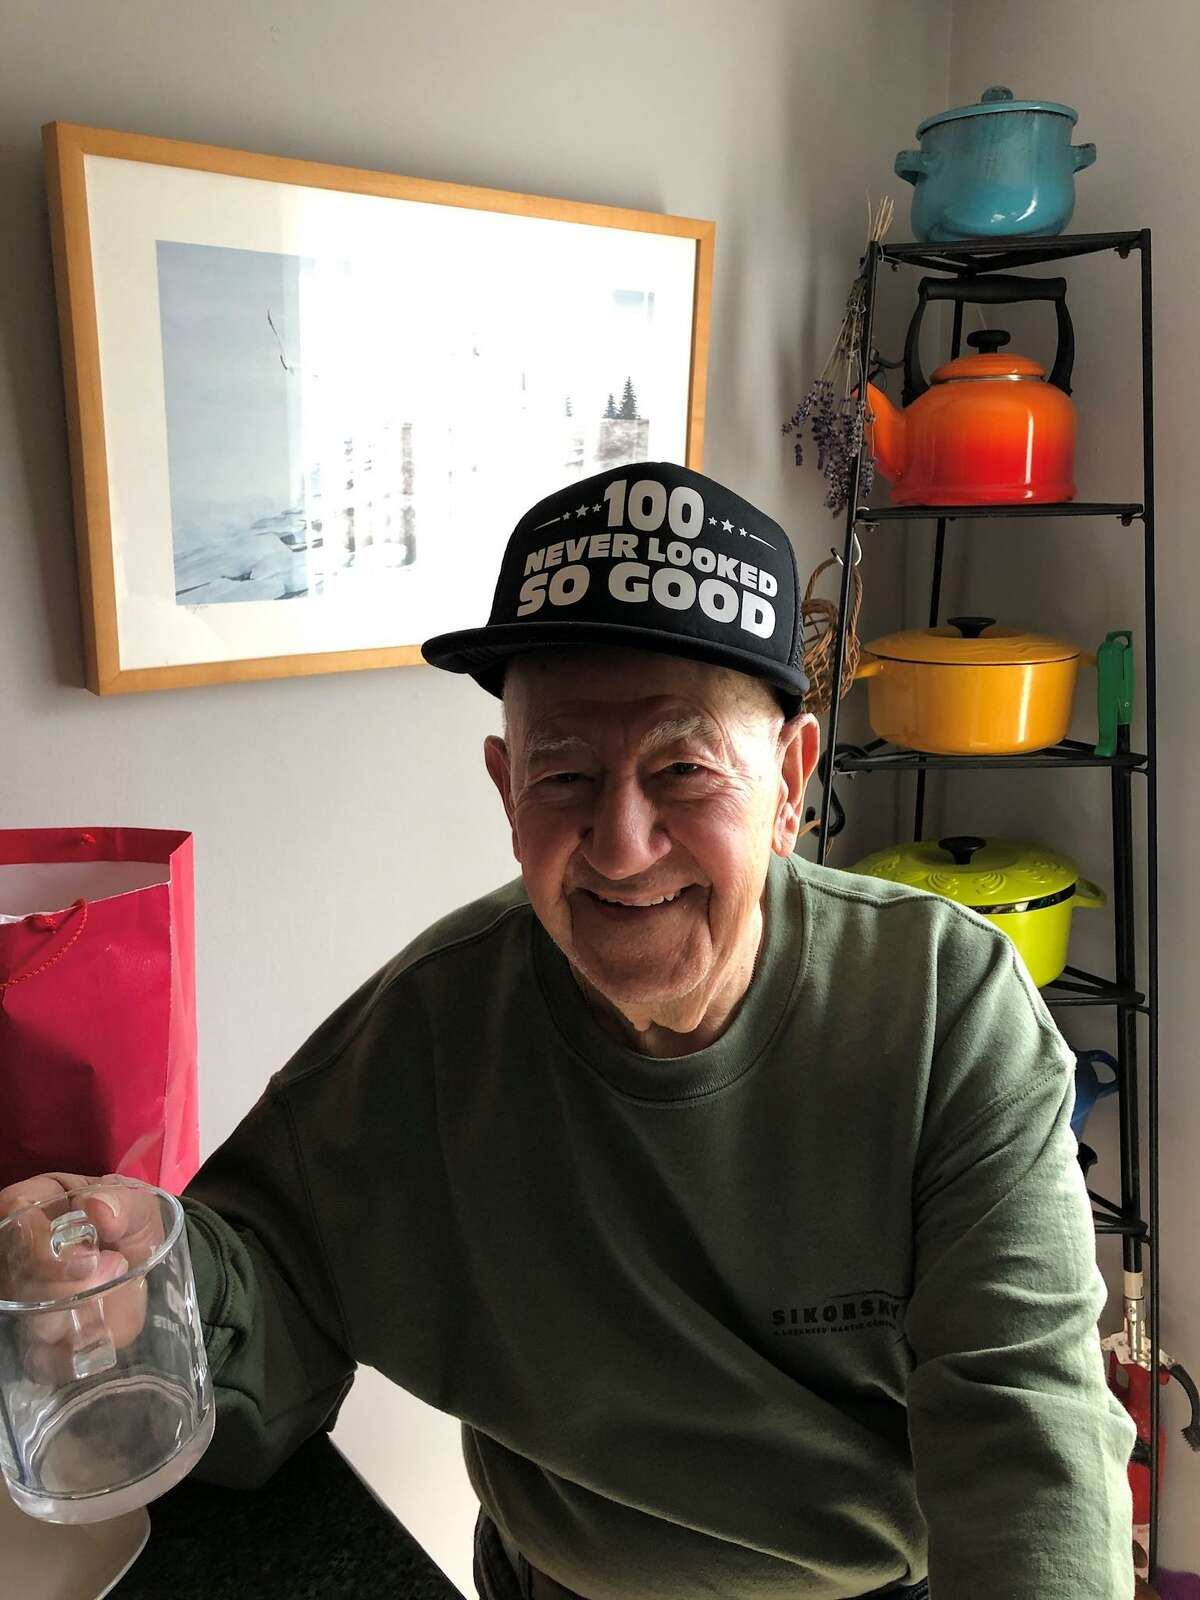 Jerry Sicardi, a 100-year-old that has been making masks with his daughter, Judy Waldeyer, and giving them out to people and places that need them.